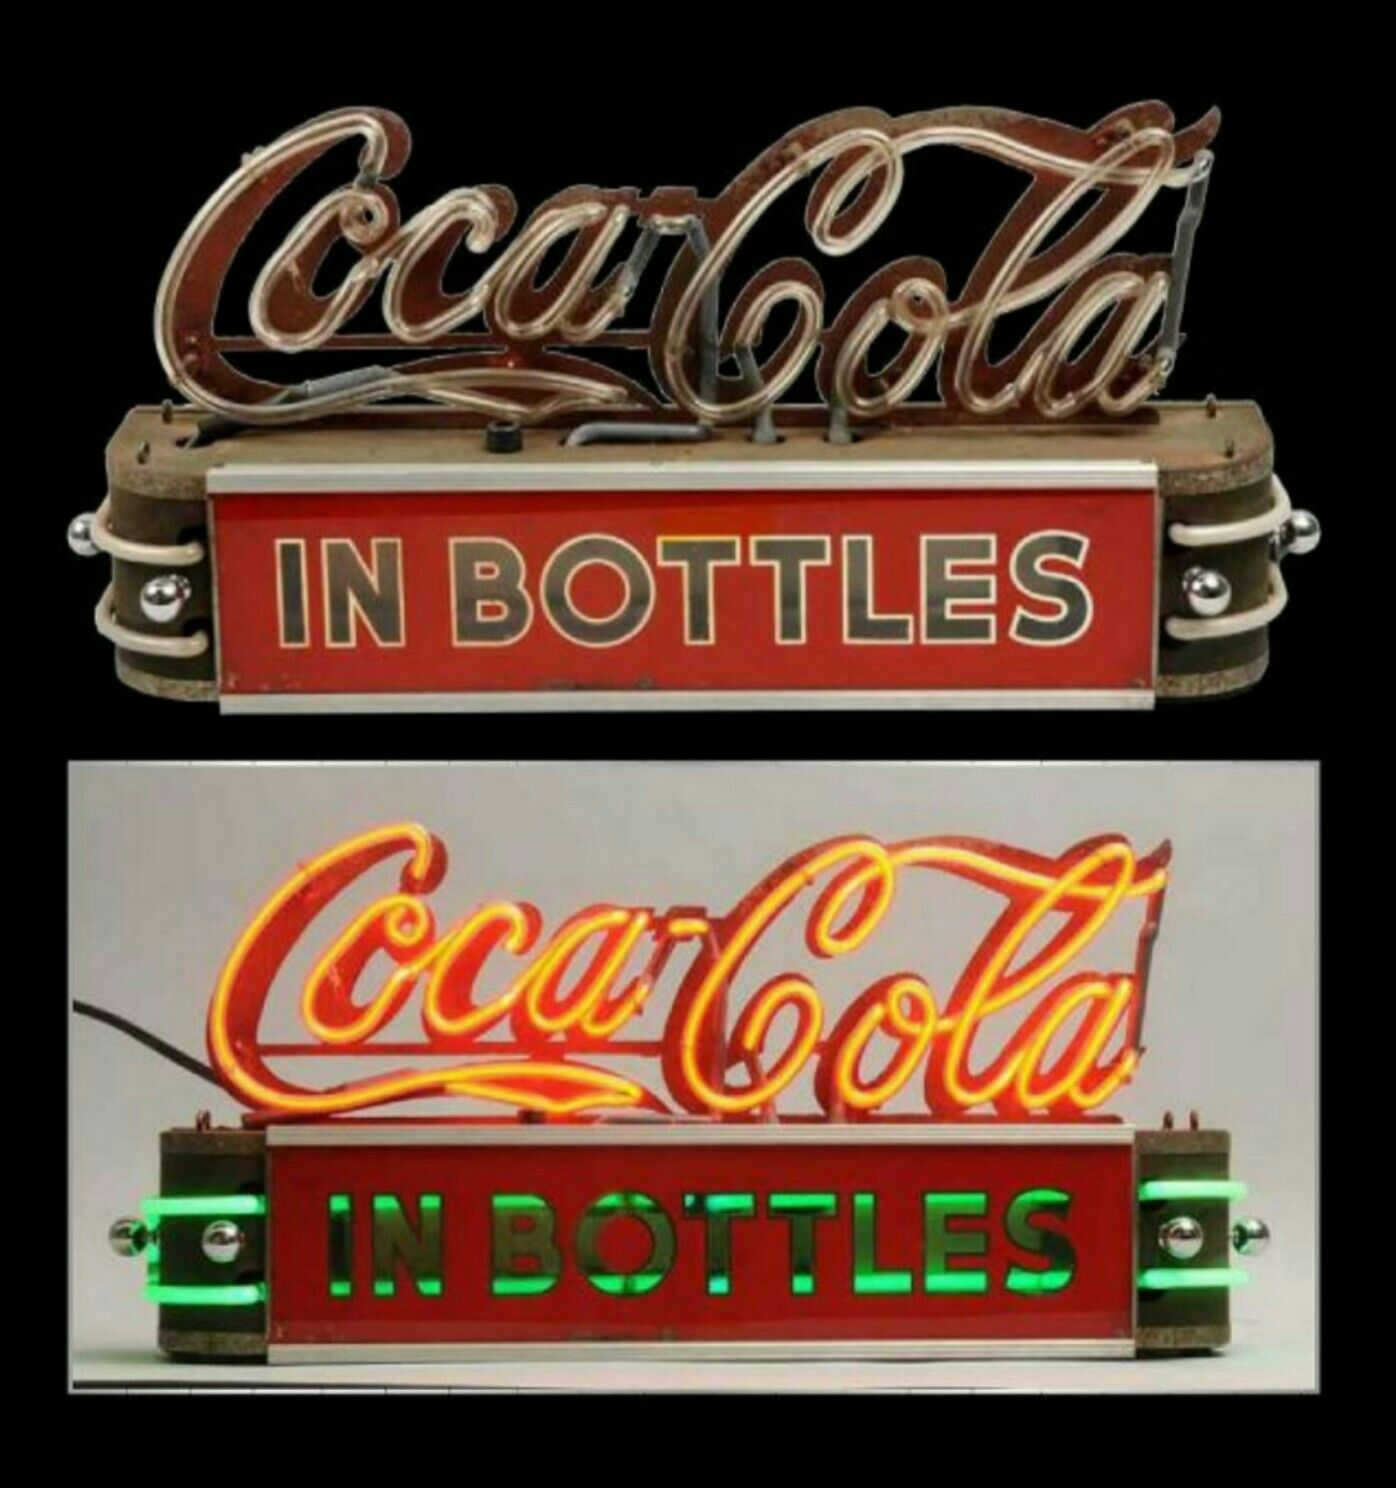 Countertop Signs Rare Original Coca Cola Countertop Neon Sign Neon Signs Coca